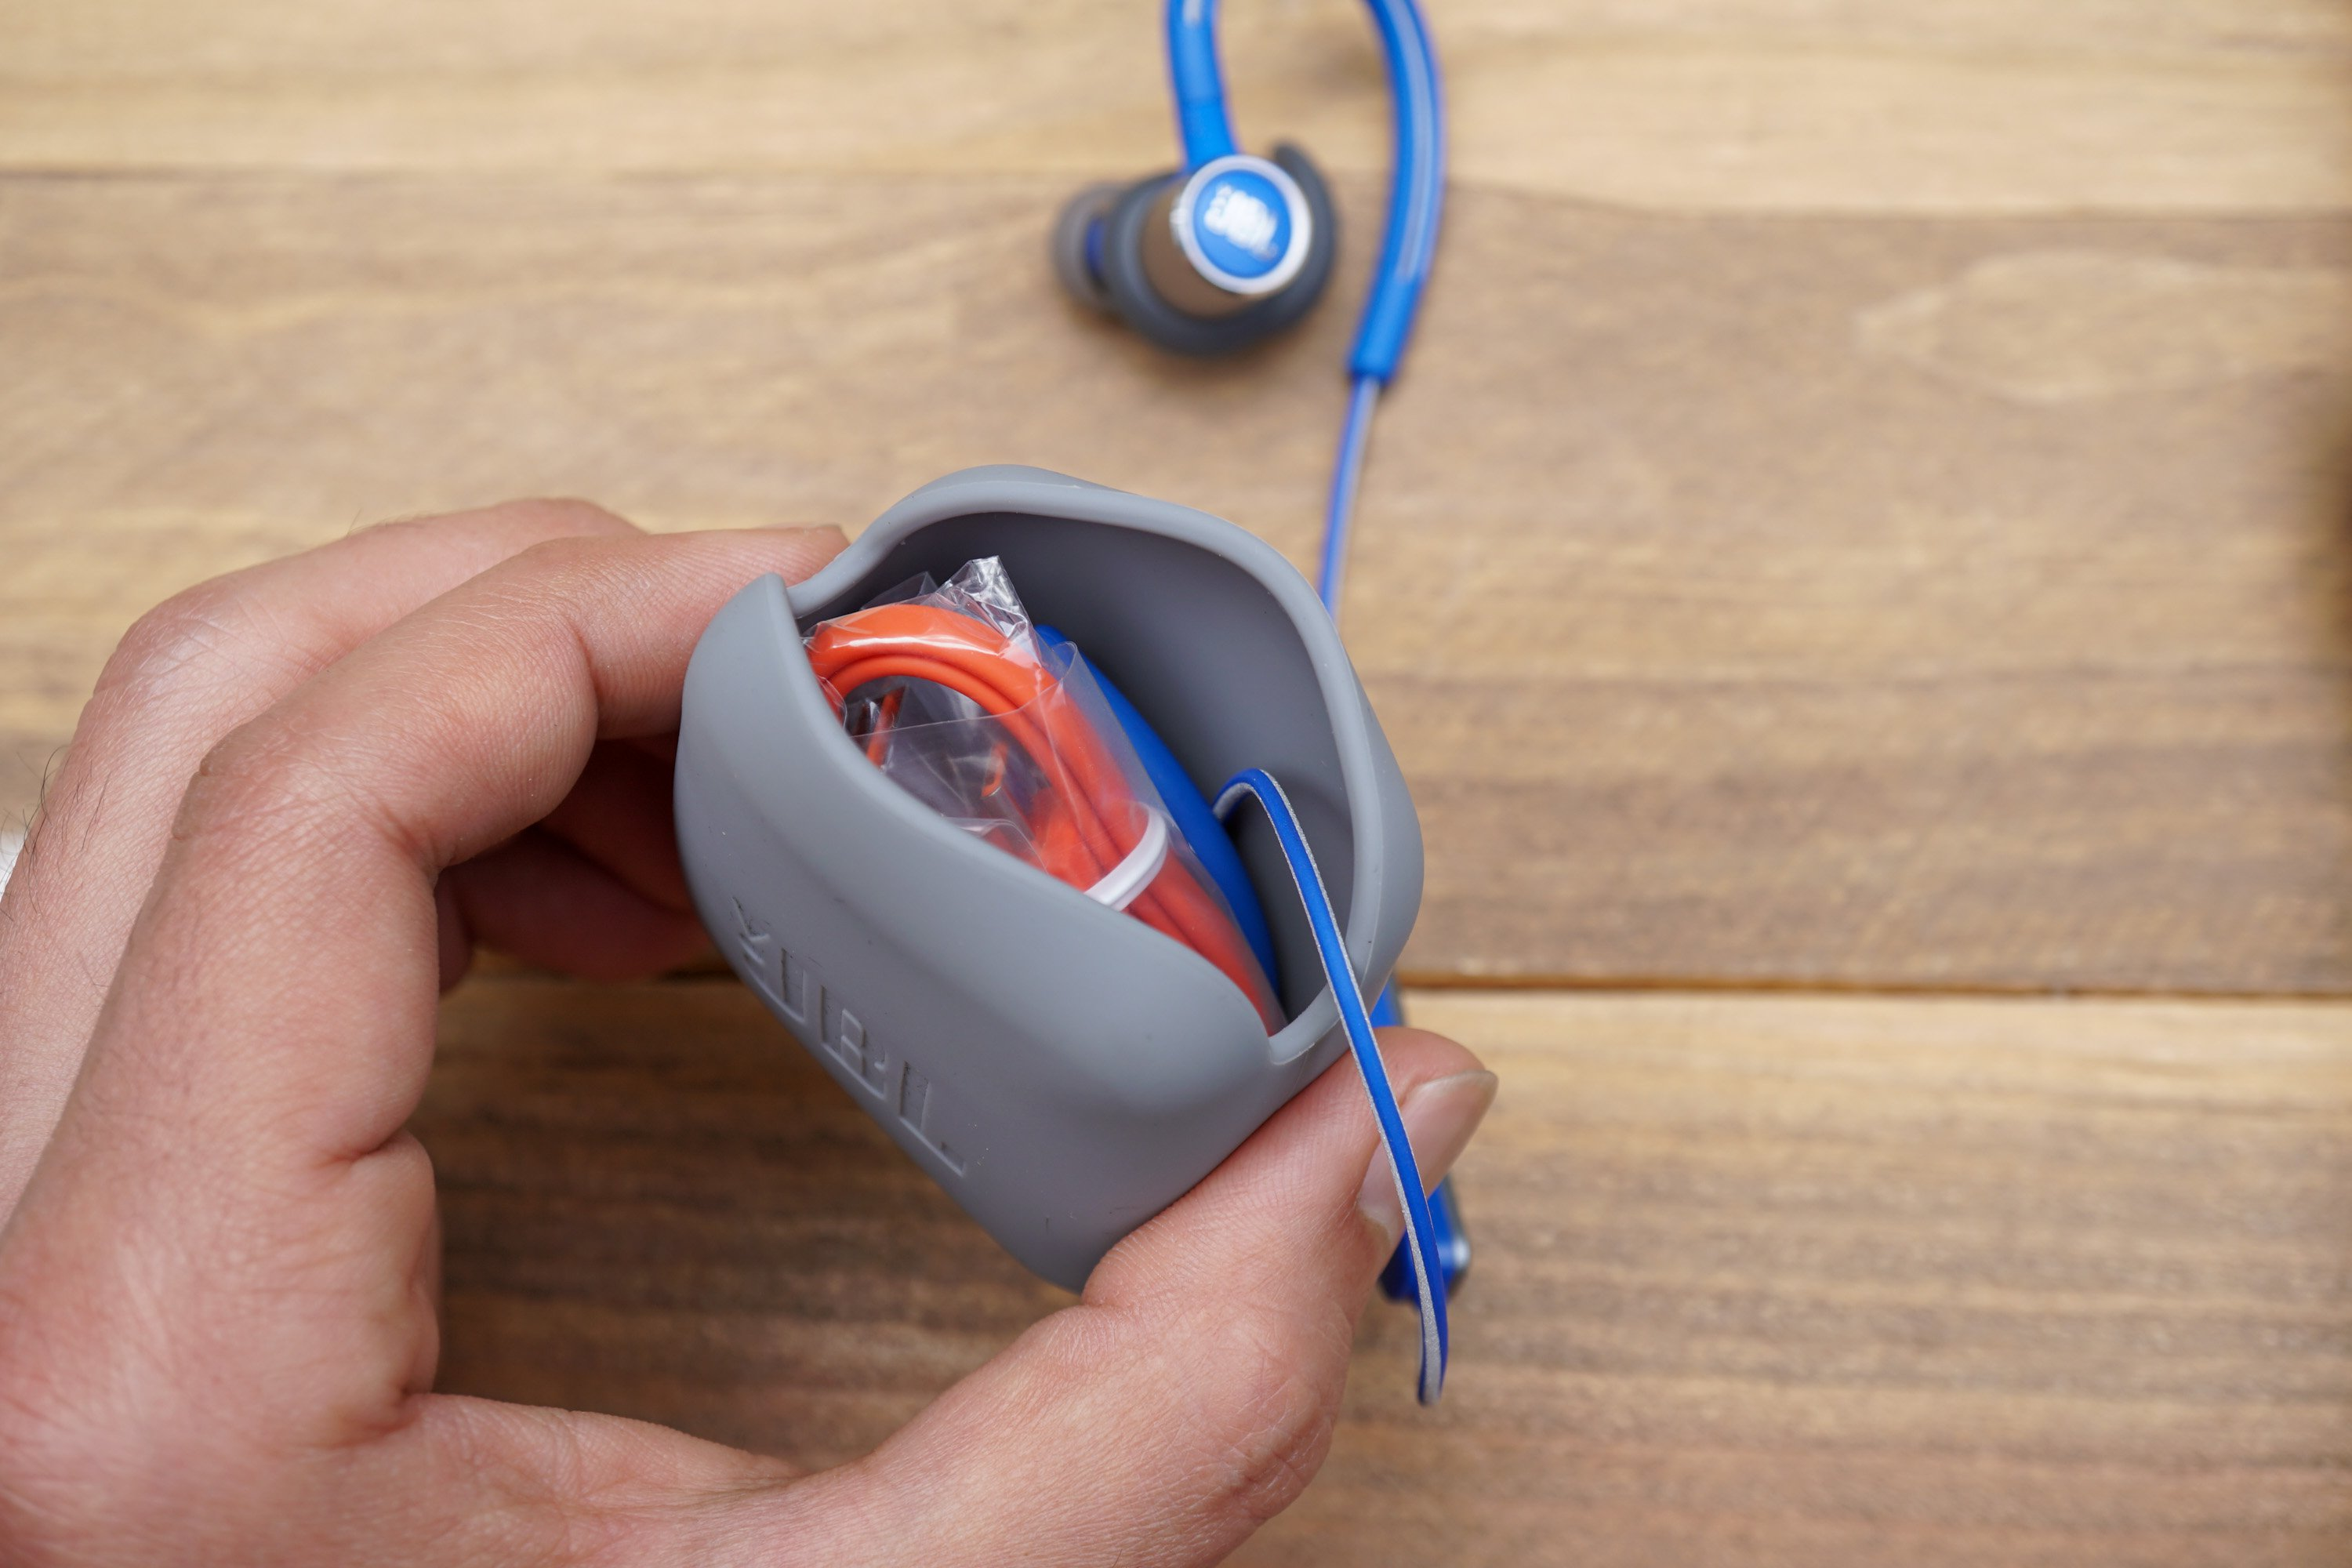 33b4a88094f JBL Reflect Contour 2 Wireless Sport Earbuds review: Step up your ...